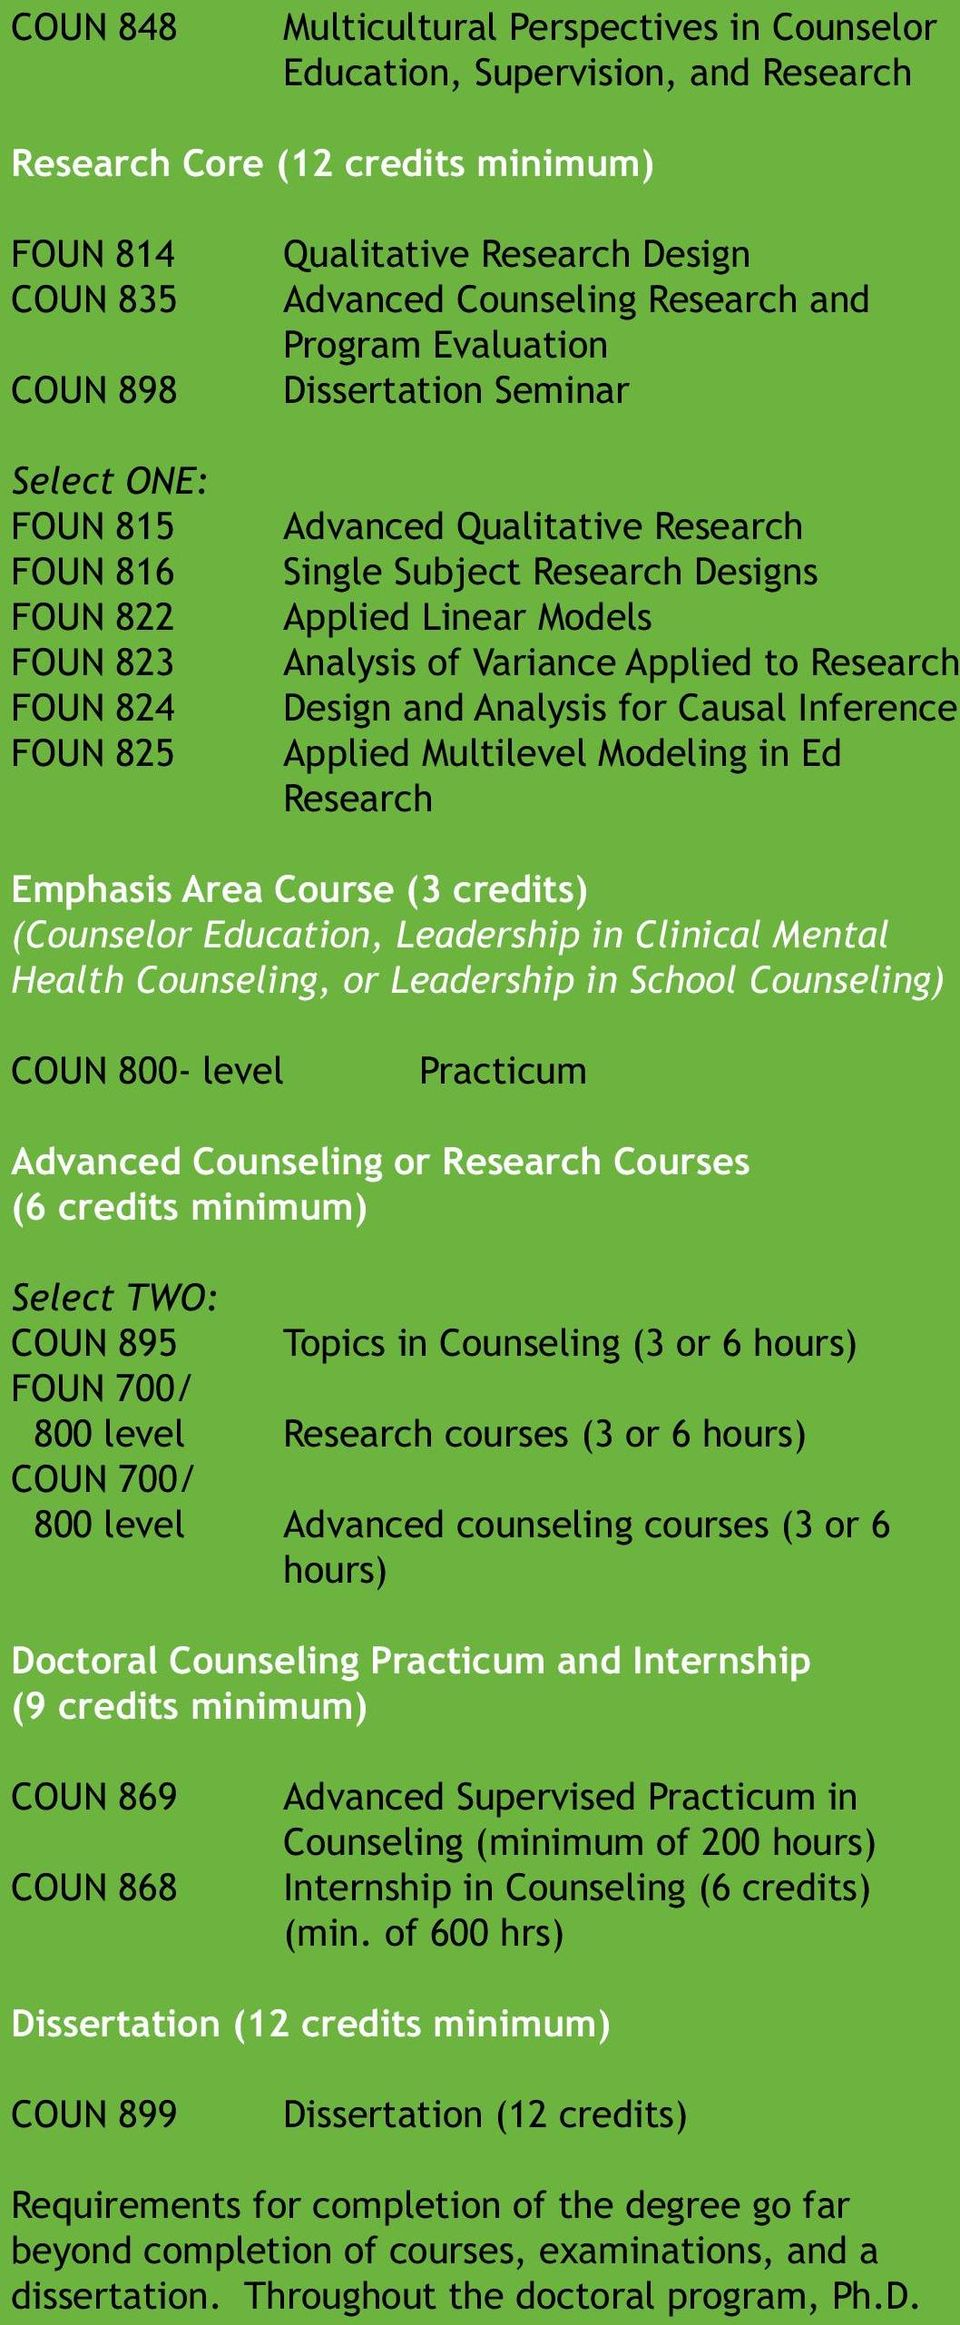 Models Analysis of Variance Applied to Research Design and Analysis for Causal Inference Applied Multilevel Modeling in Ed Research Emphasis Area Course (3 credits) (Counselor Education, Leadership